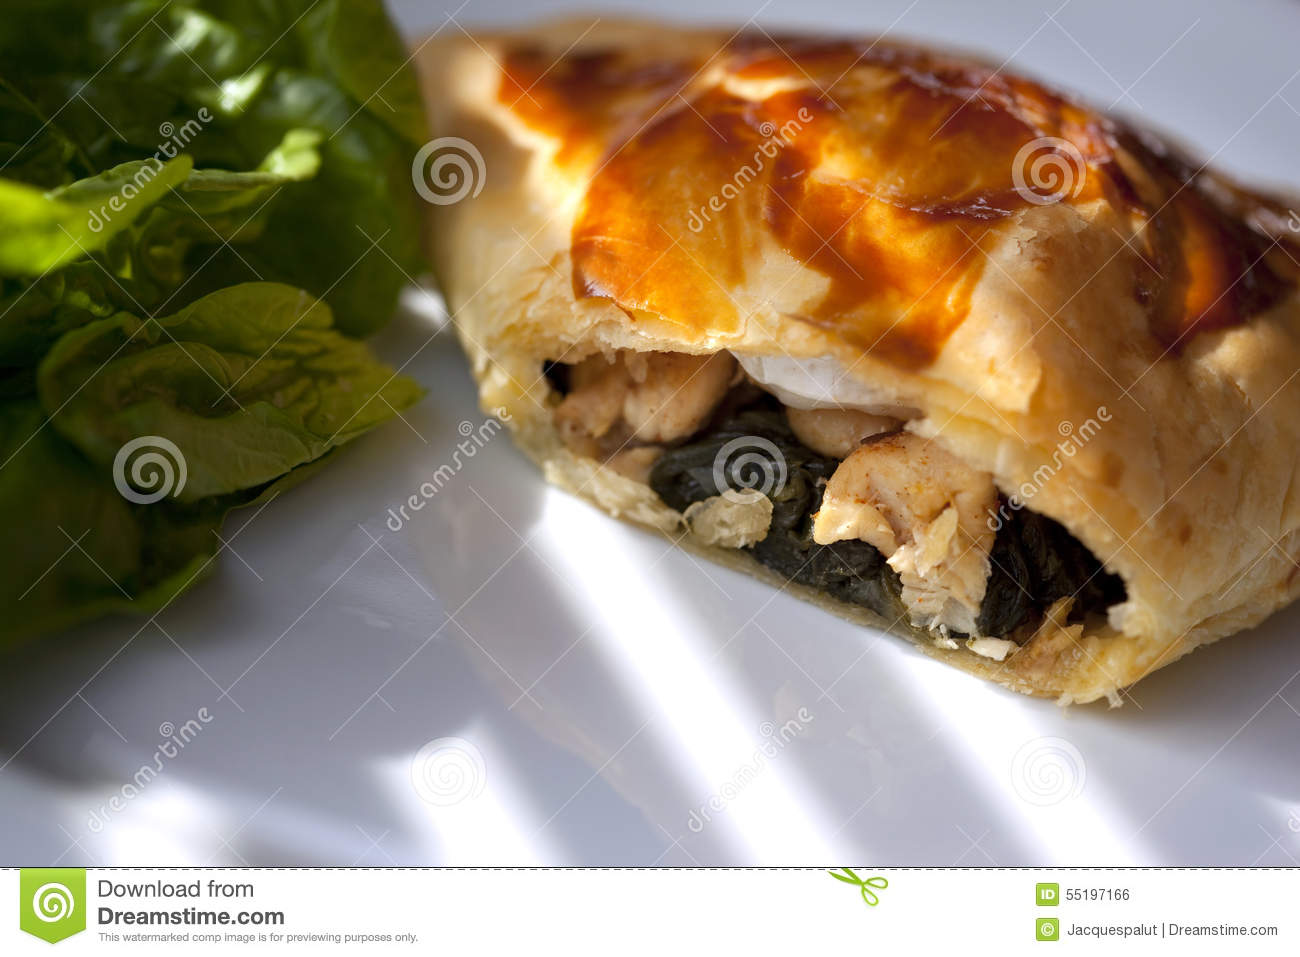 Danish pastry with spinach, chicken and goat cheese.